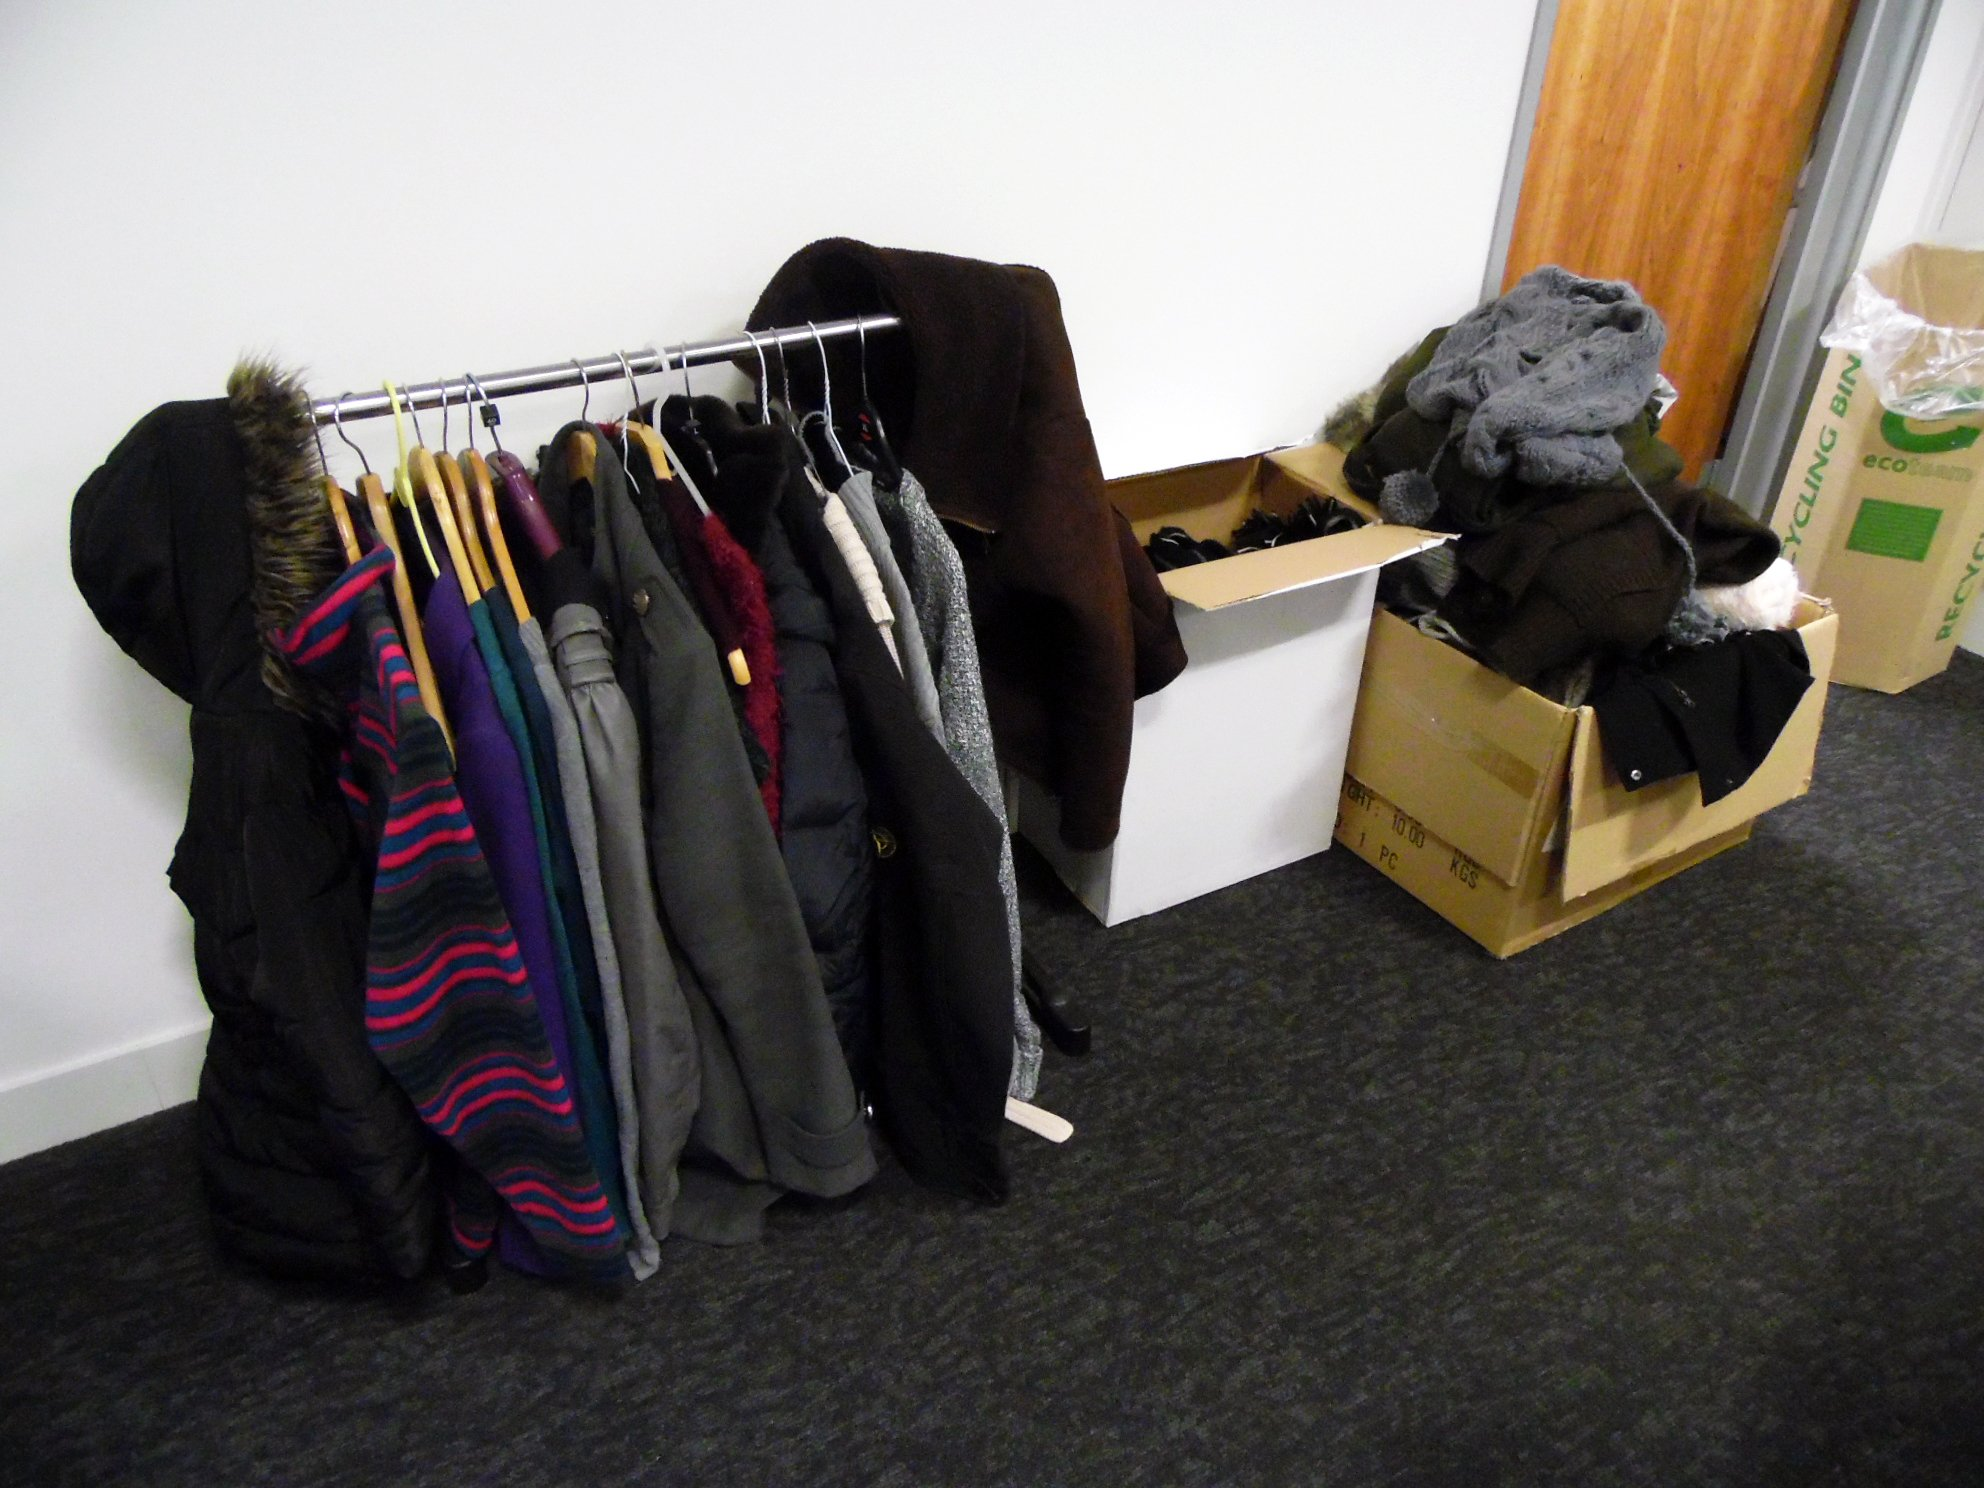 All the warm clothes @TPPRecruitment have collected in November. #GivingTuesday https://t.co/lSOdwpmt1M